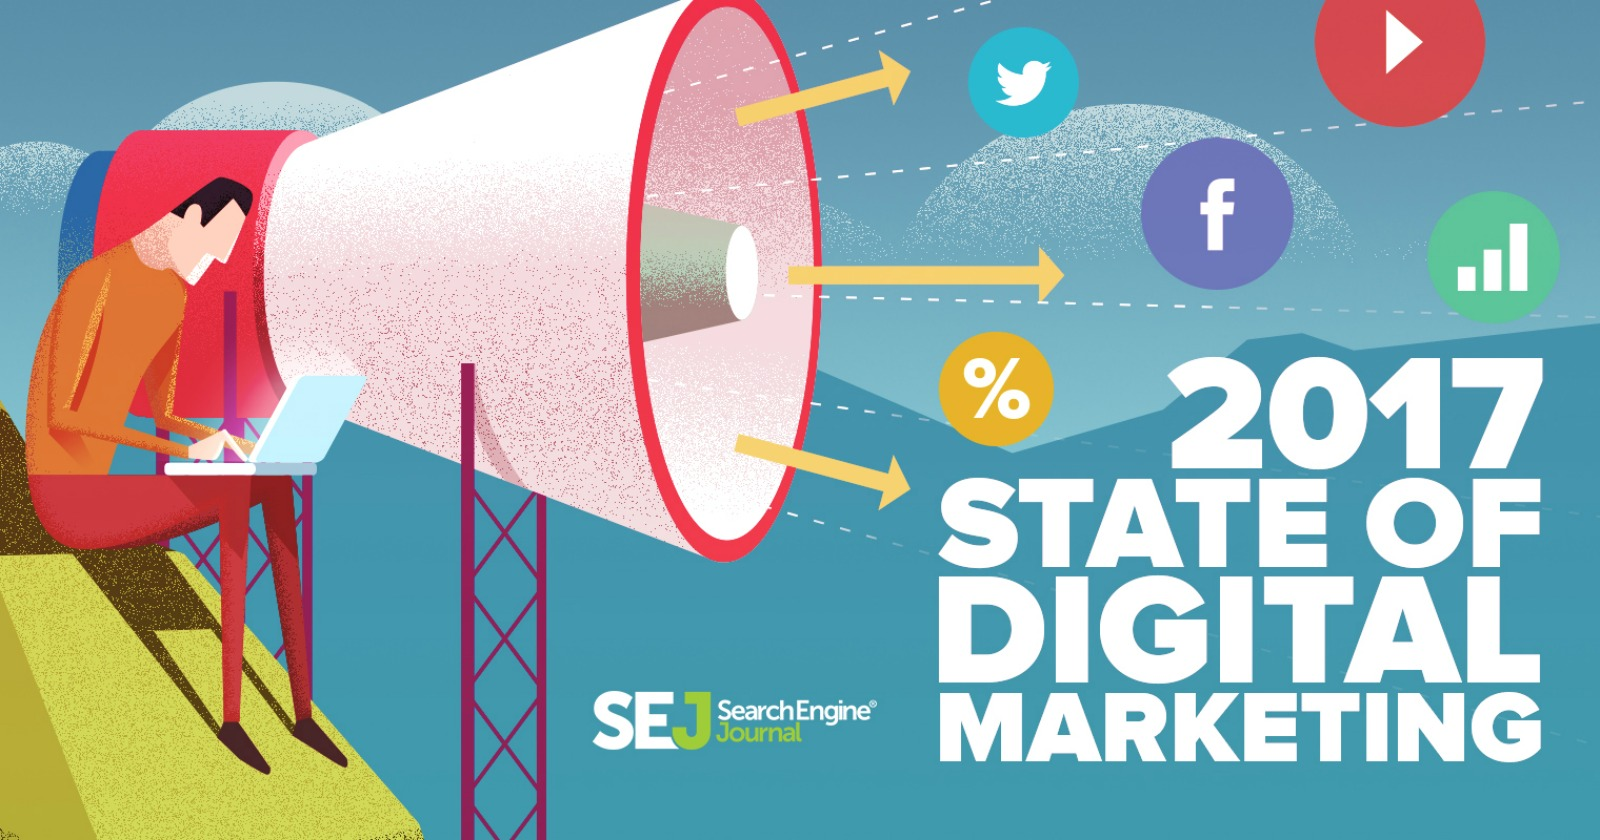 SEJ-2017-State-of-Digital-Marketing.jpg